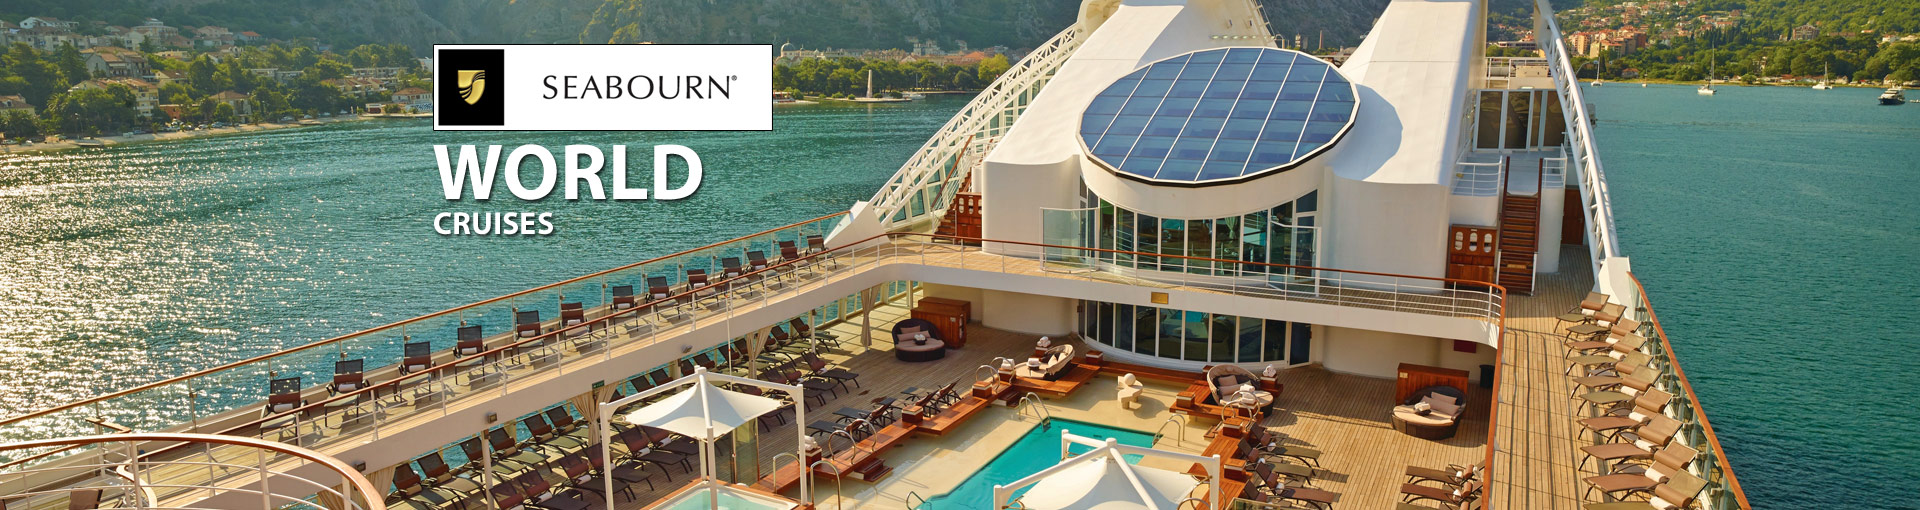 Banner image for Seabourn World Cruise